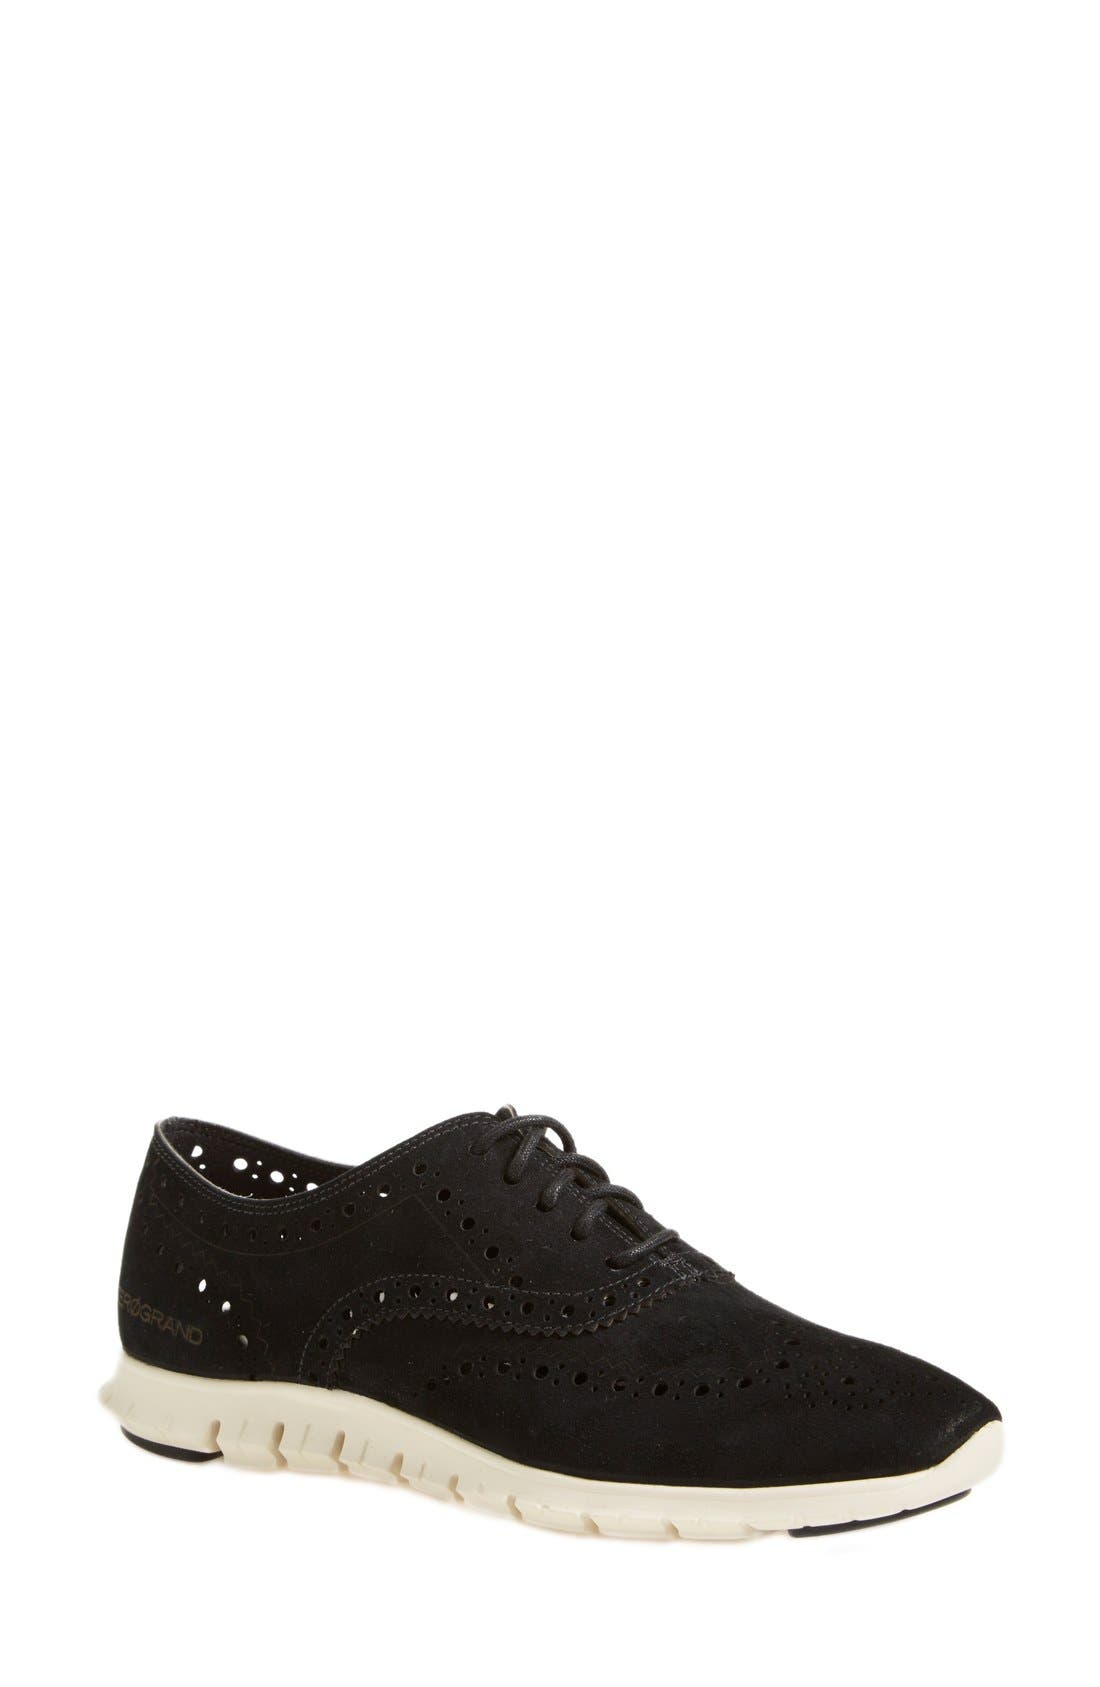 COLE HAAN 'ZeroGrand' Perforated Wingtip